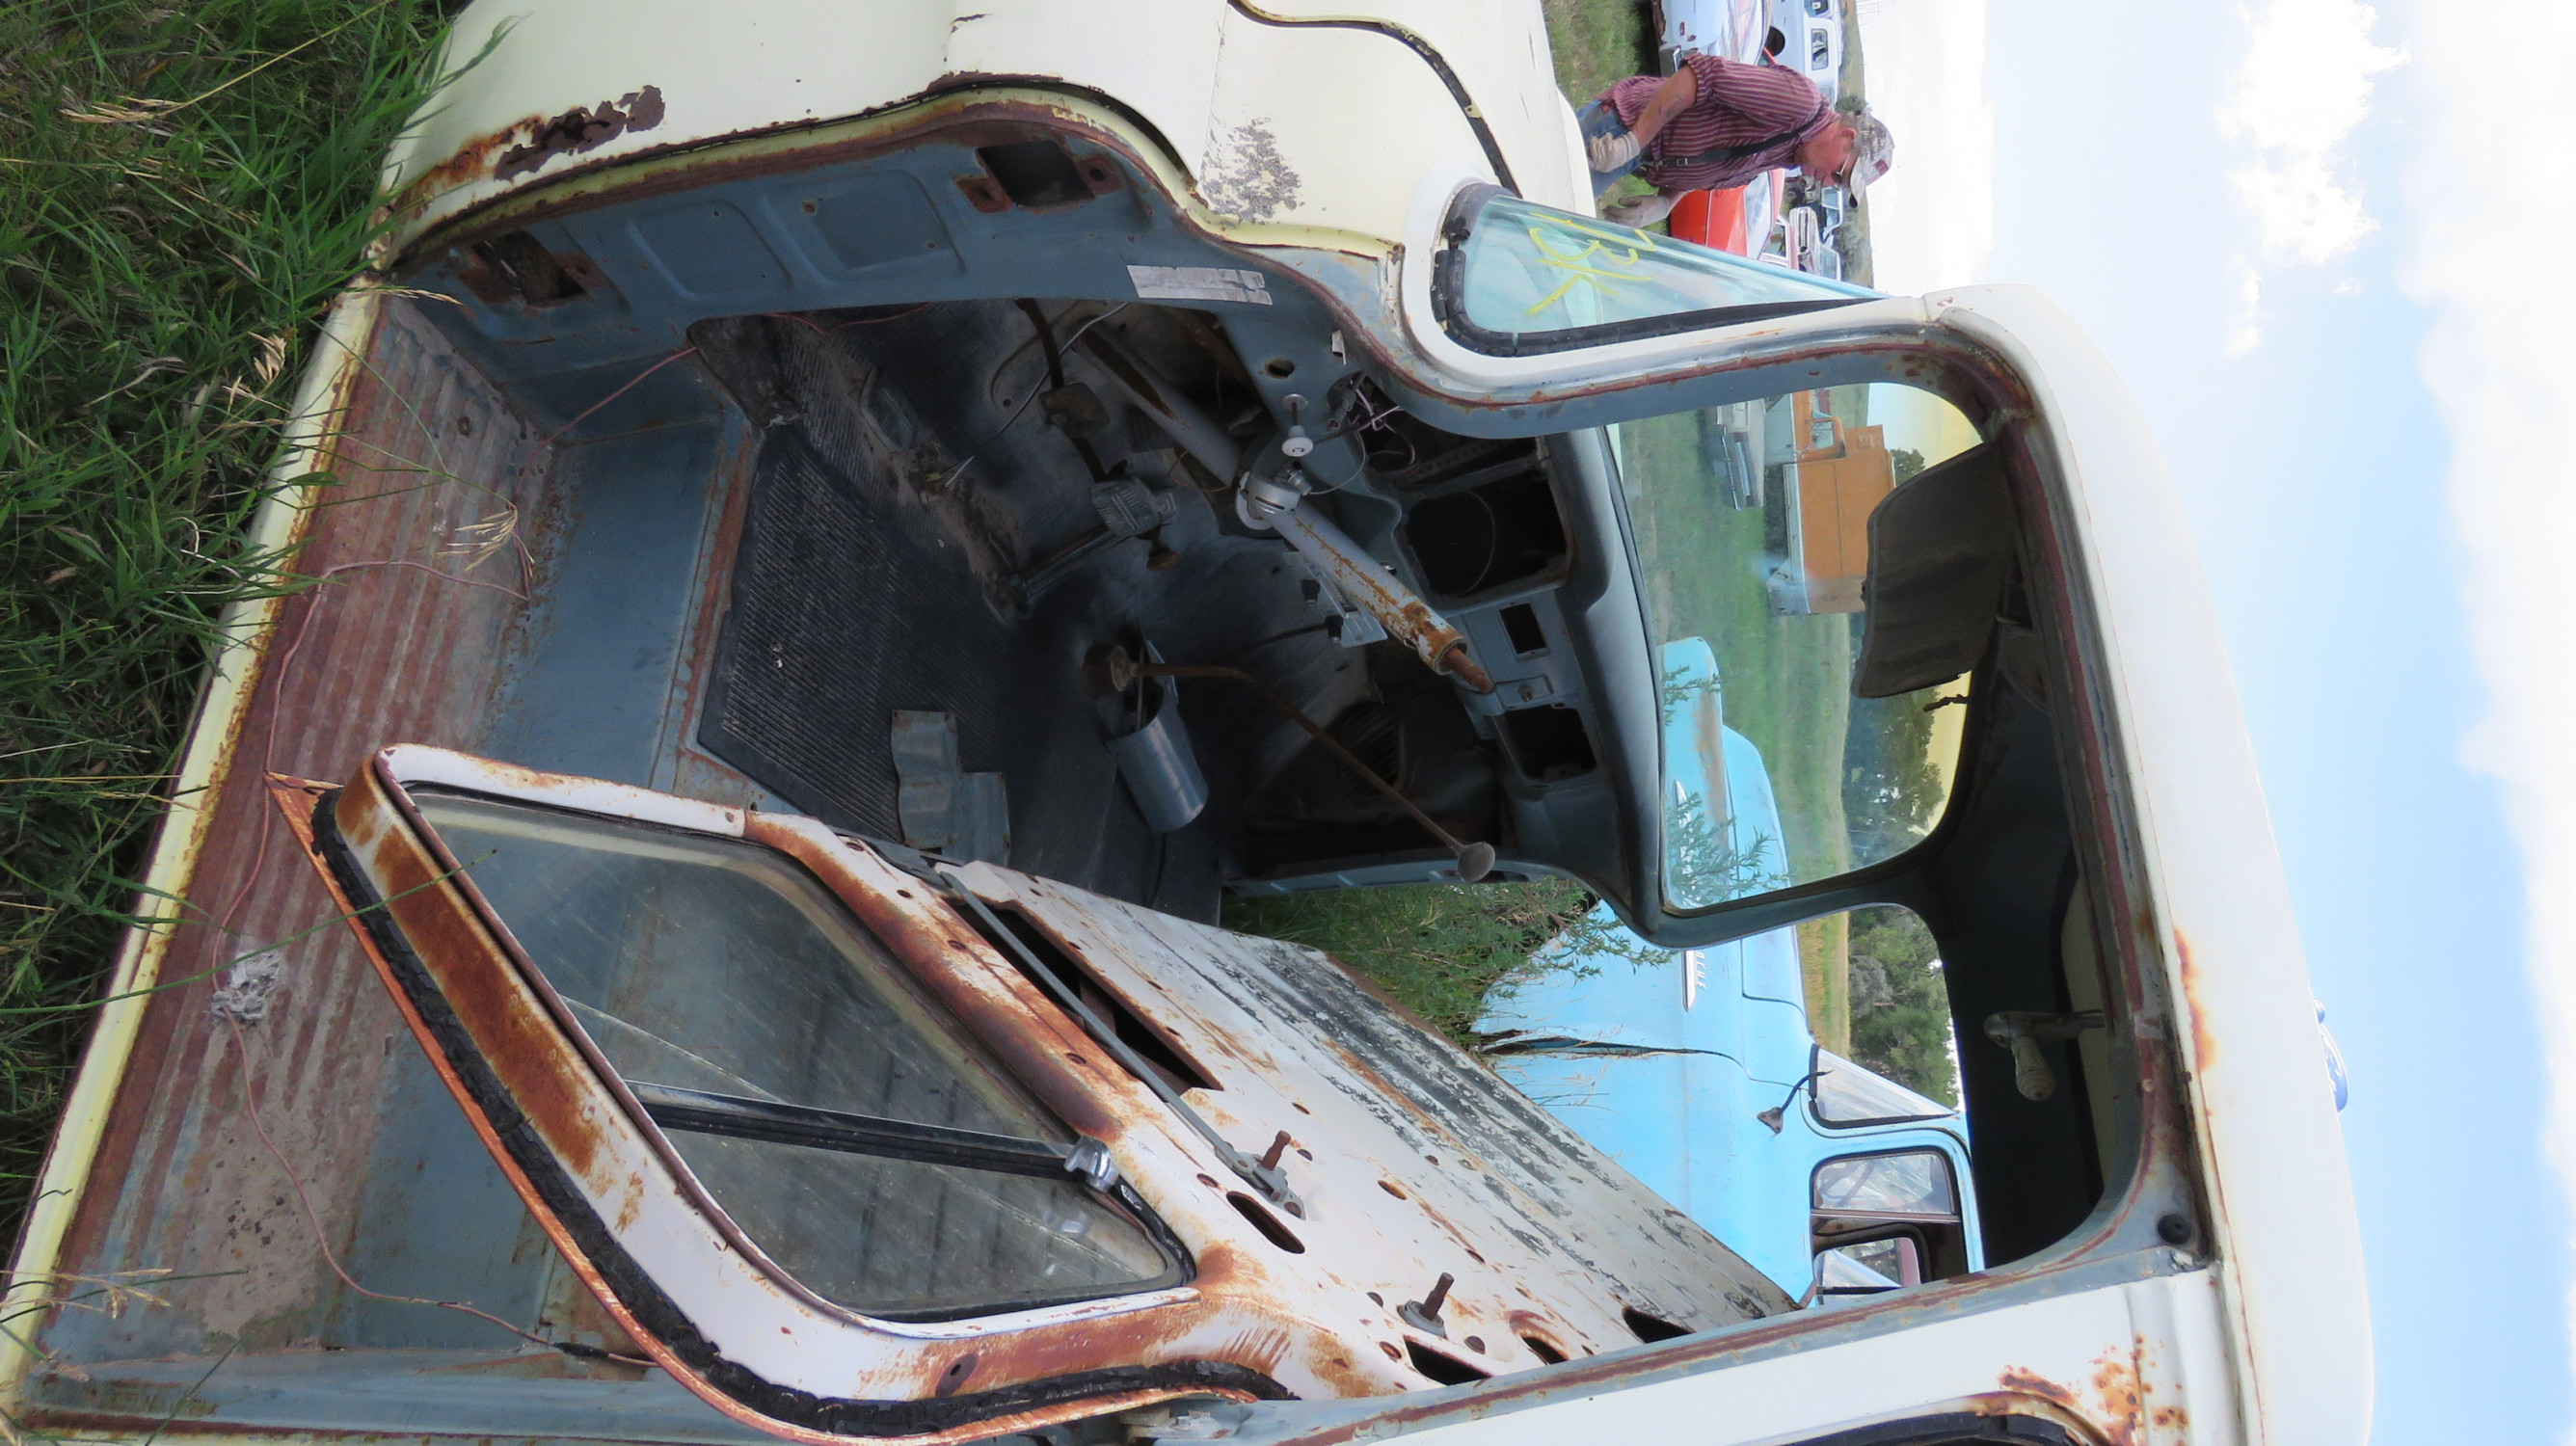 1955 GMC FLEETSIDE PICKUP FOR PARTS OR PROJECT - Image 6